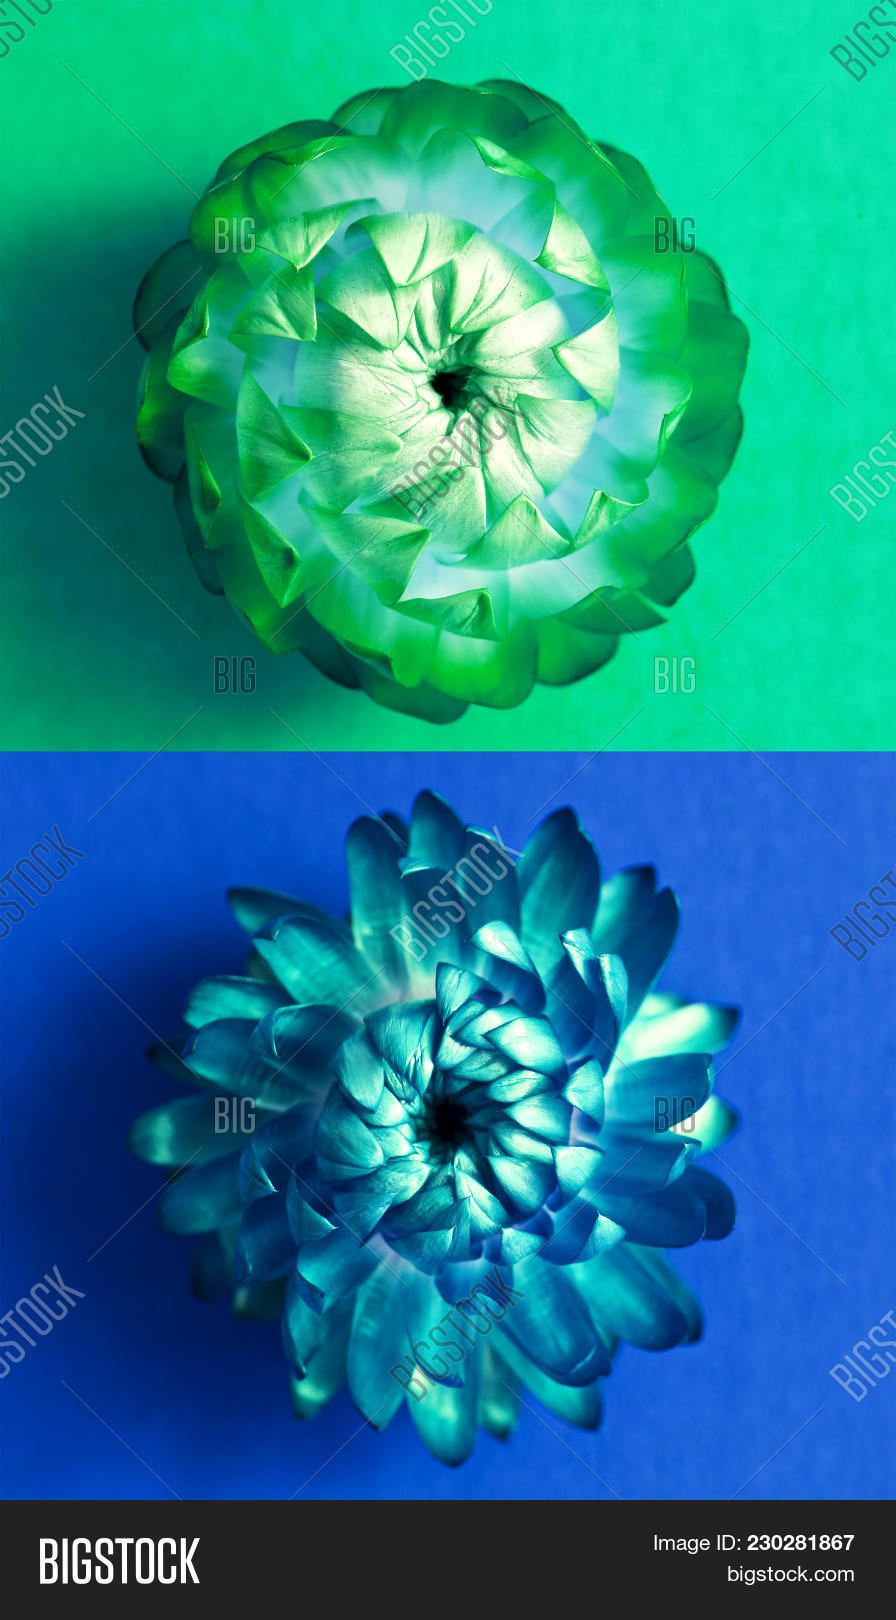 Two blossoms image photo free trial bigstock two blossoms of everlasting flowers strawflowers green flower head and blue flower head izmirmasajfo